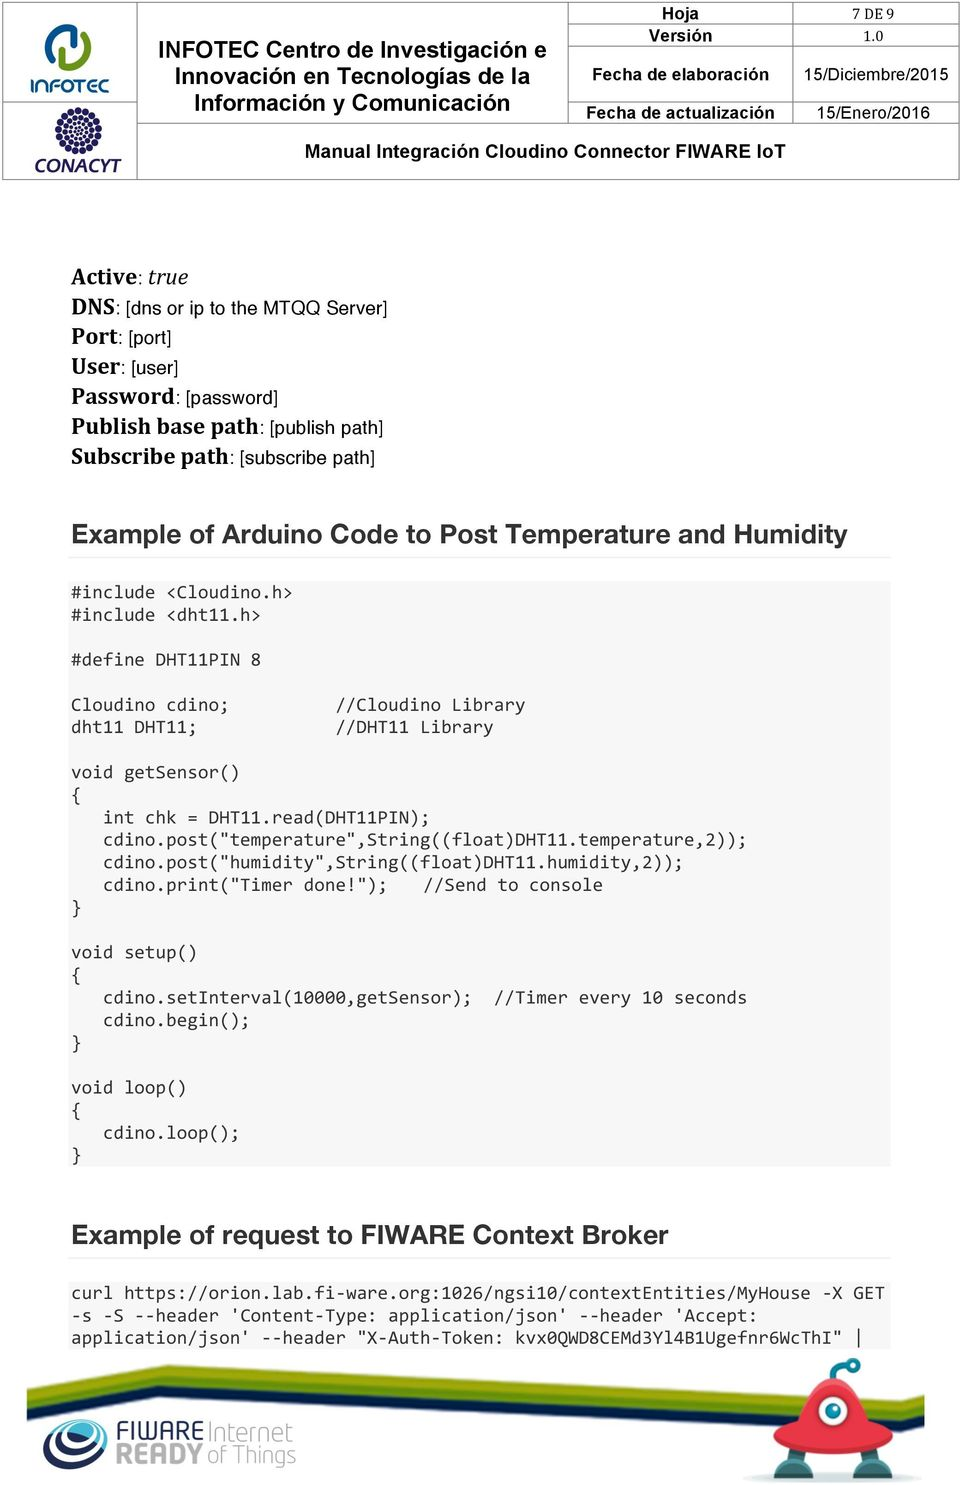 "read(DHT11PIN); cdino.post(""temperature"",string((float)dht11.temperature,2)); cdino.post(""humidity"",string((float)dht11.humidity,2)); cdino.print(""timer done!""); //Send to console void setup() cdino."